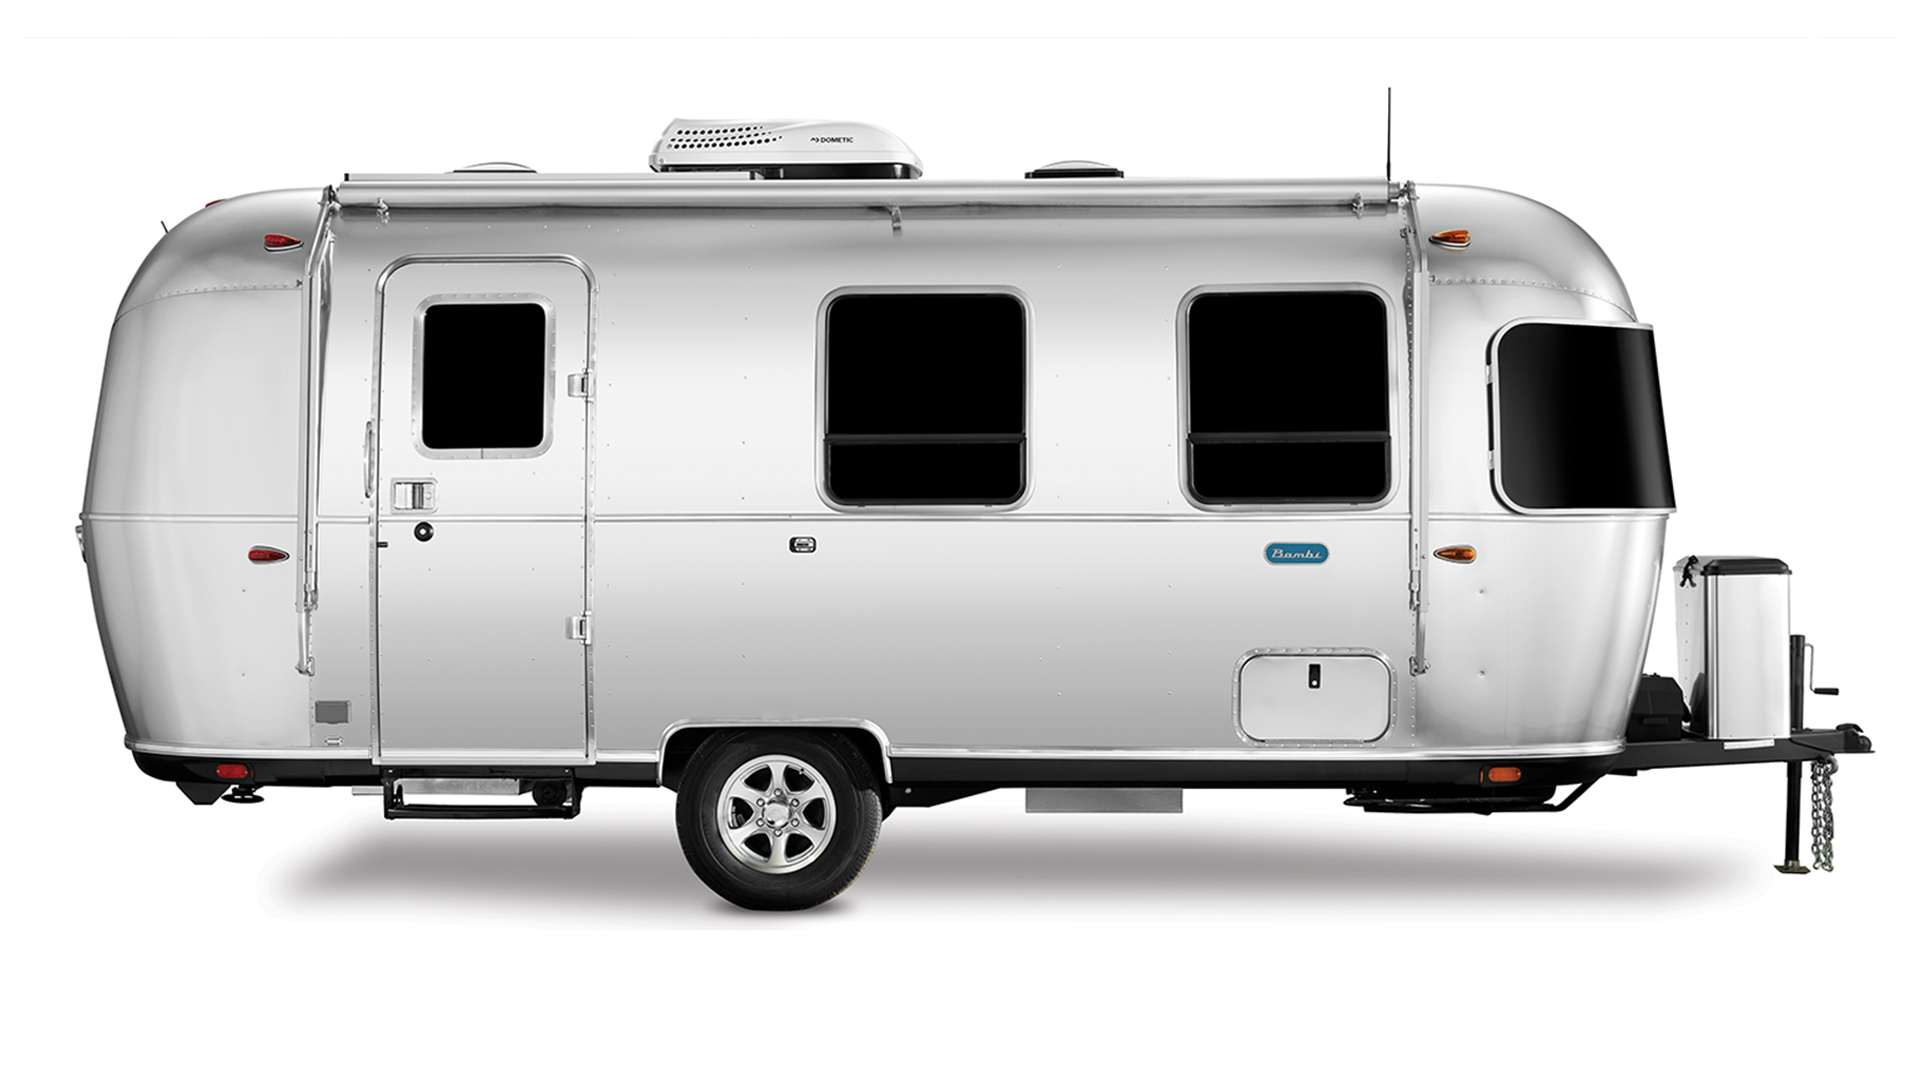 Airstream-Bambi-22FB-Travel-Trailer-Exterior-Curb-Side